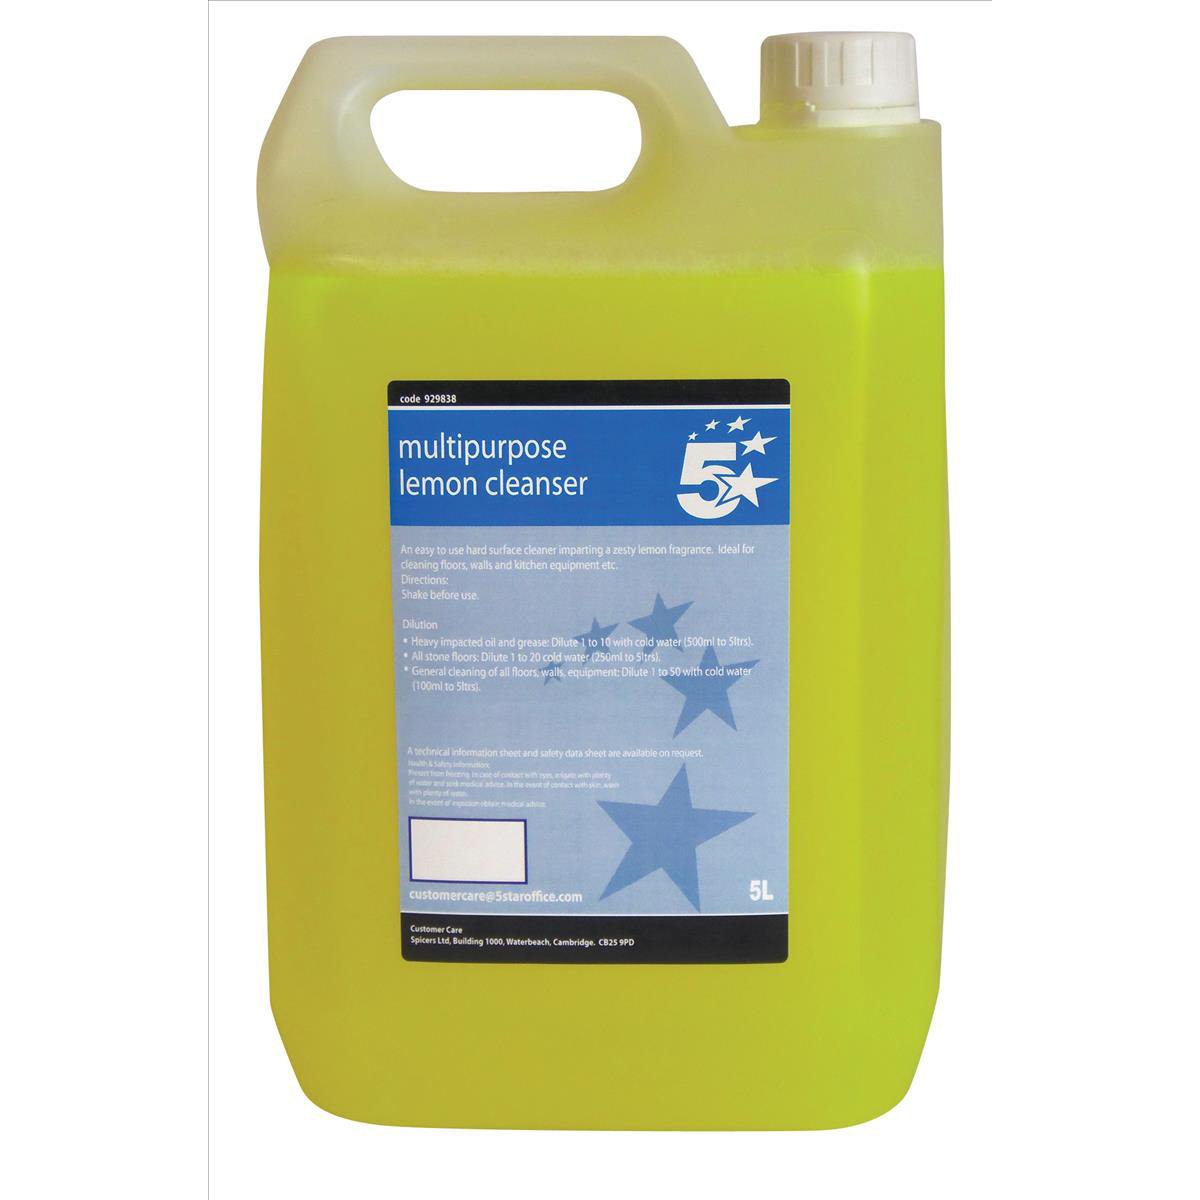 5 Star MultiPurpse Lemon Cleaner 5 litre